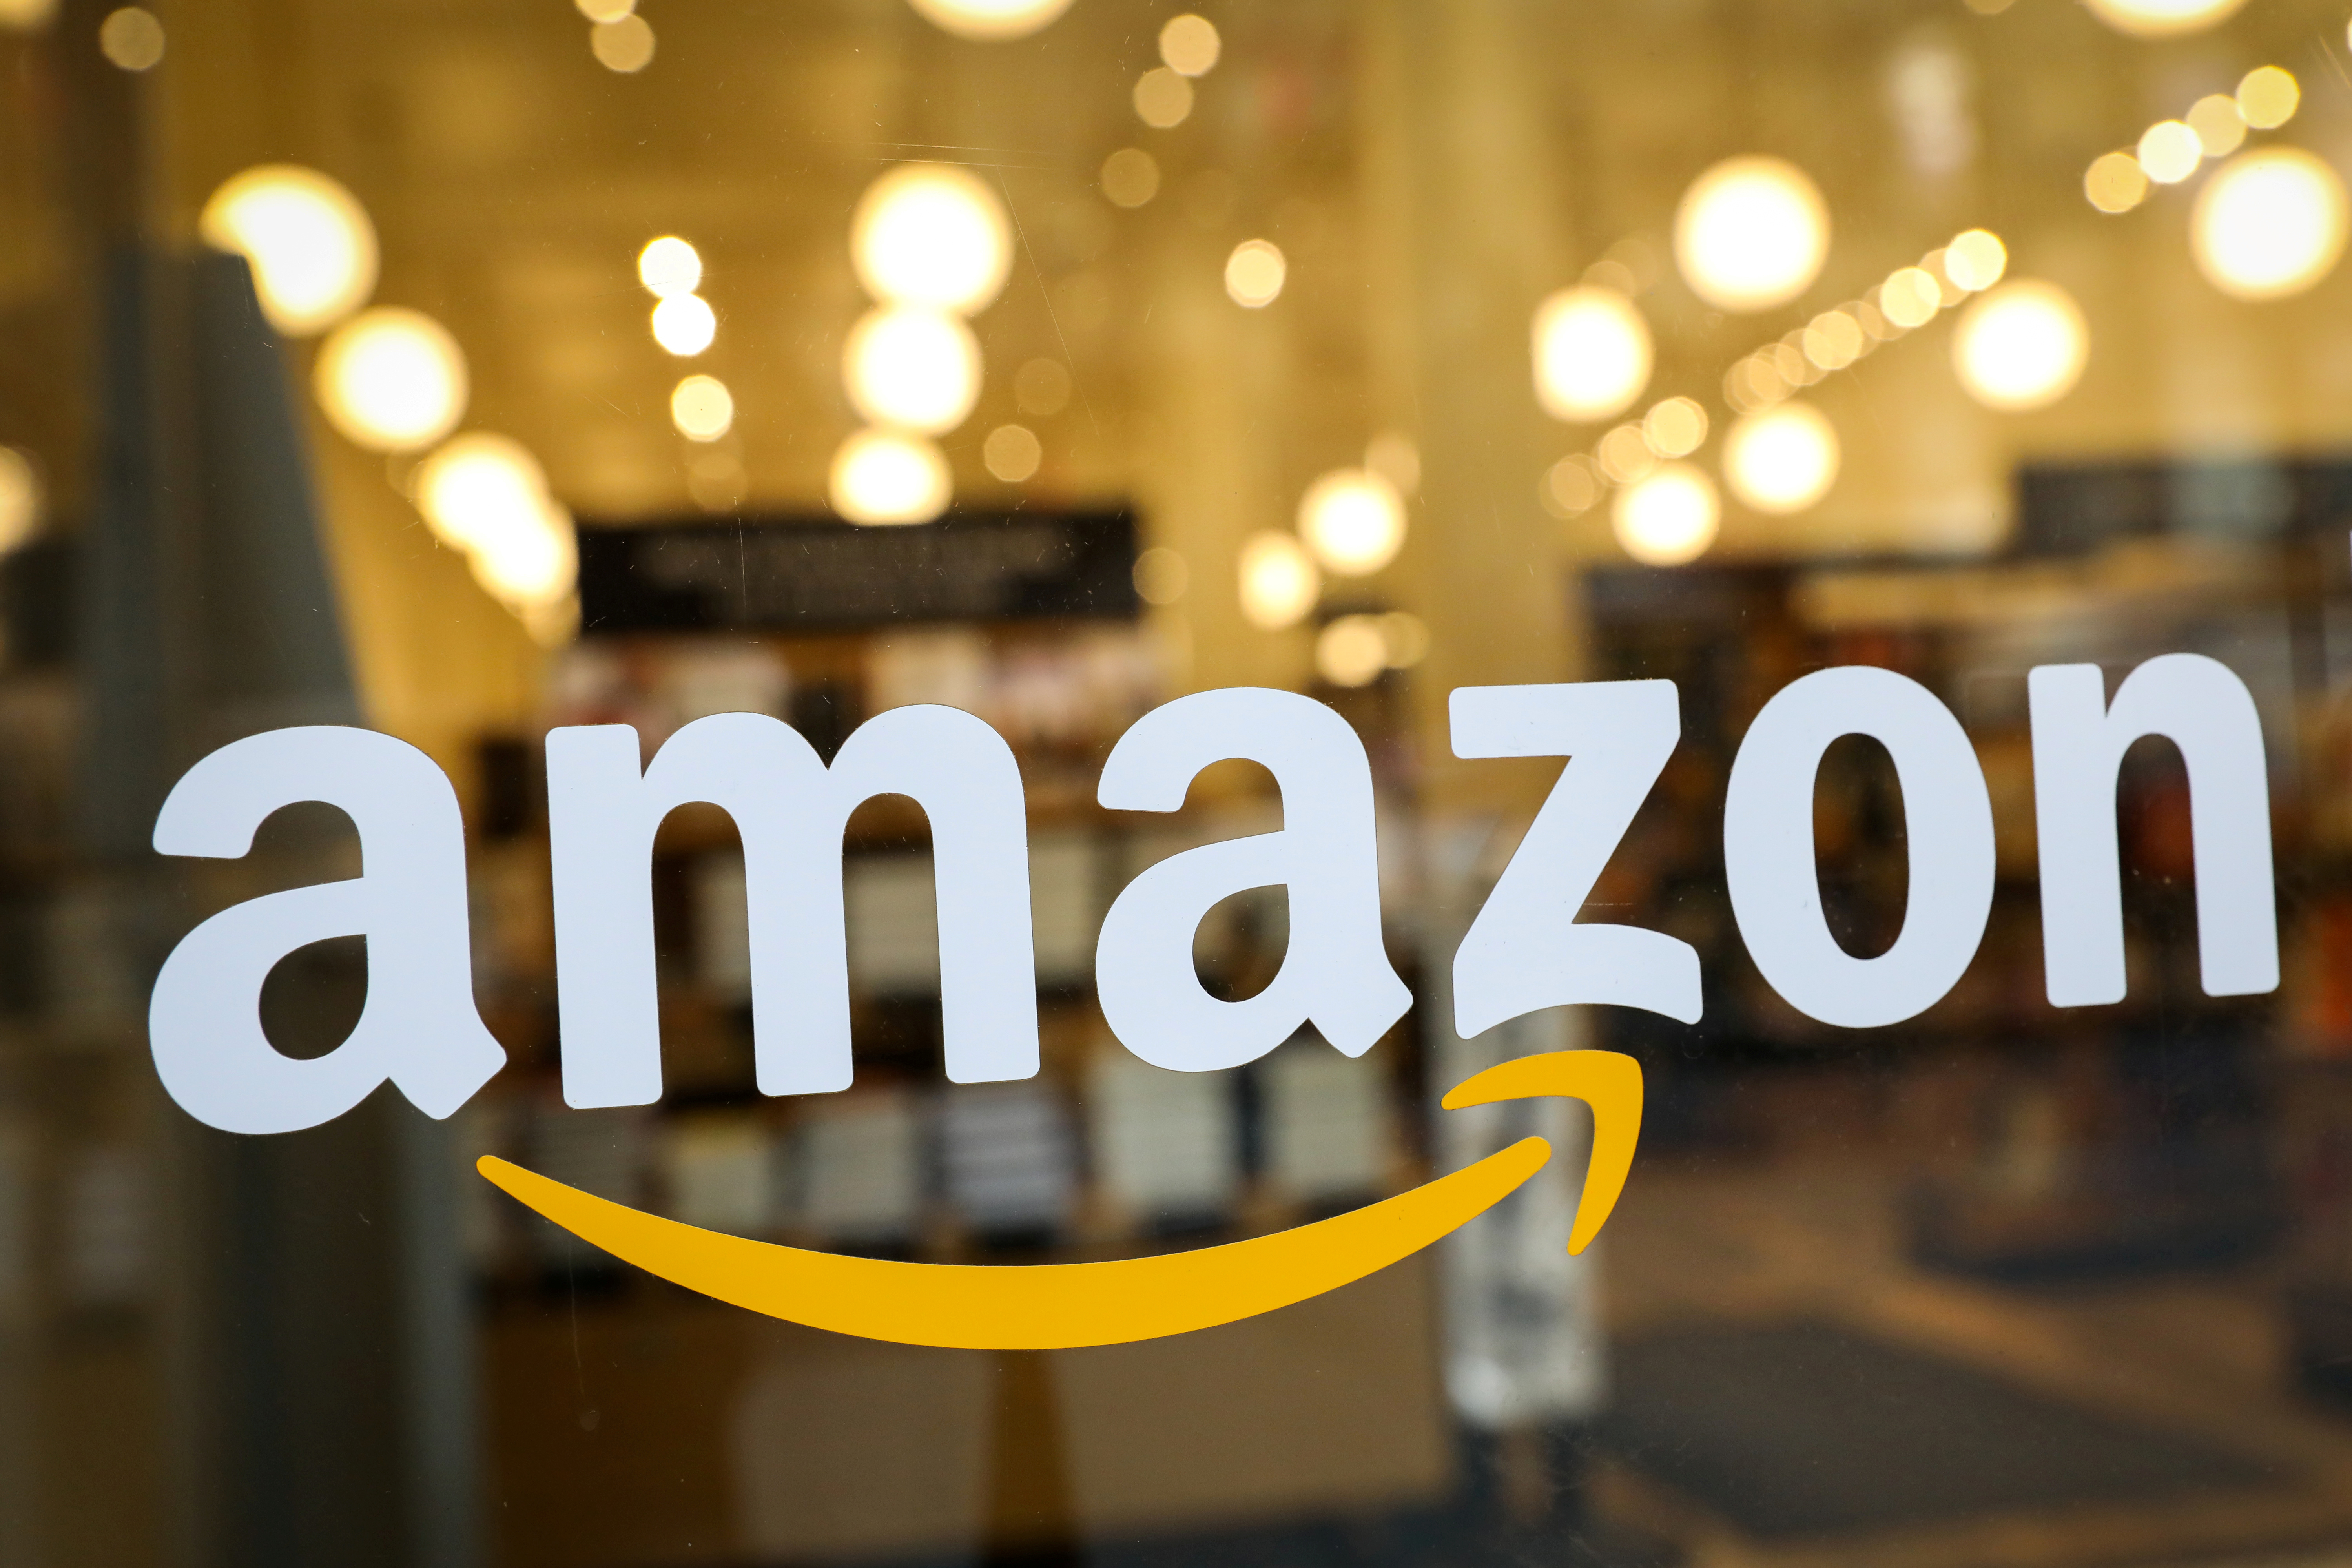 The logo of Amazon is seen on the door of an Amazon Books retail store in New York City, U.S., February 14, 2019. REUTERS/Brendan McDermid